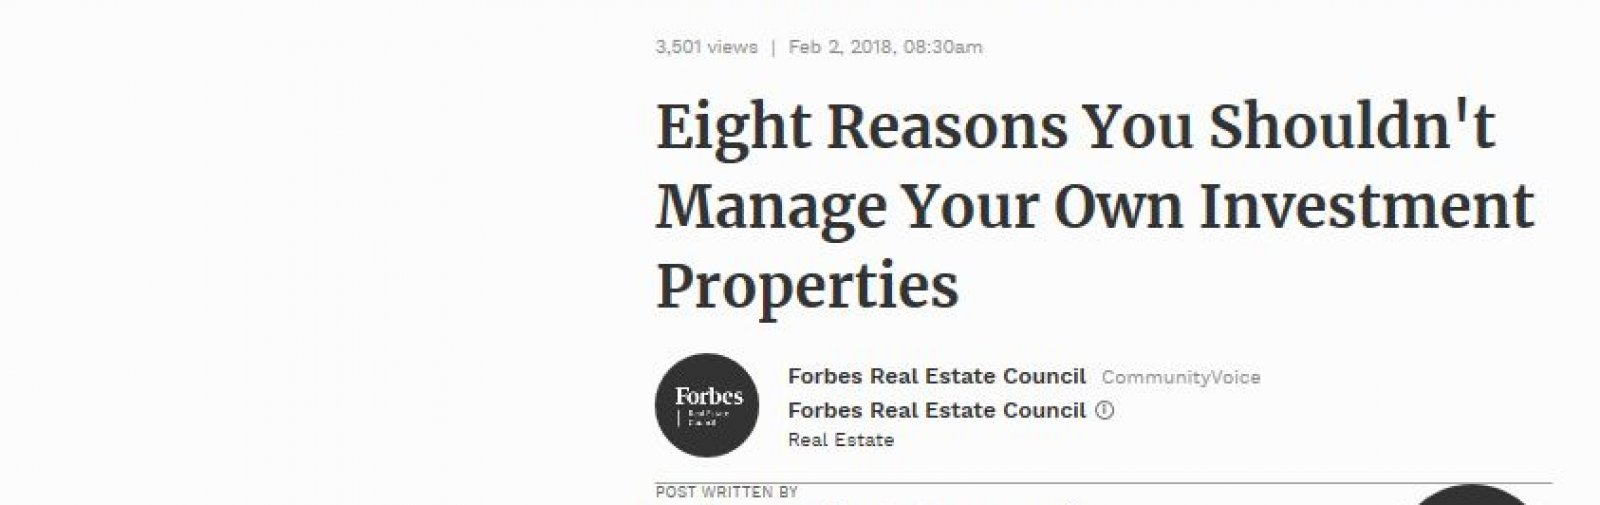 Eight Reasons You Shouldn't Manage Your Own Investment Properties